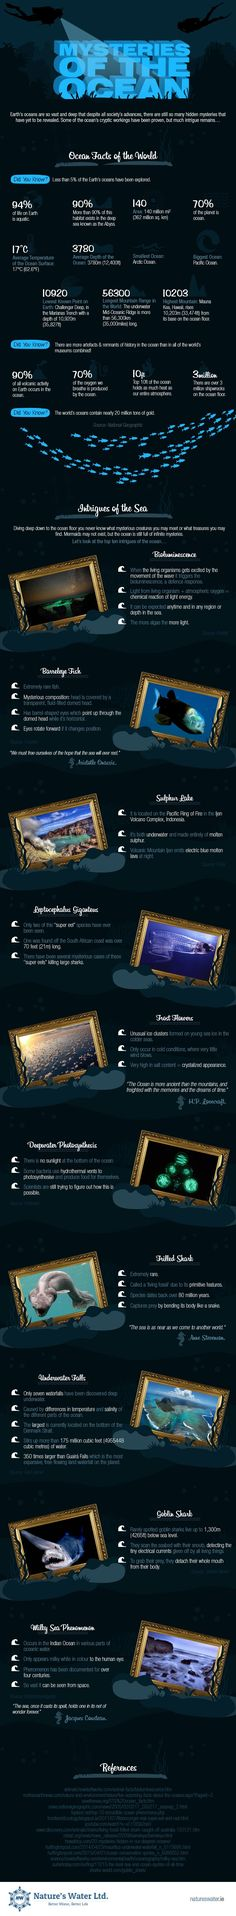 An infographic that uncovers some of the most unusual and enigmatic ocean creatures and phenomena: frilled sharks; underwater falls, etc. Mysteries Of The World, Ocean Depth, Marine Biology, Ocean Creatures, Shark Week, Sea And Ocean, Underwater World, Earth Science, Ocean Life